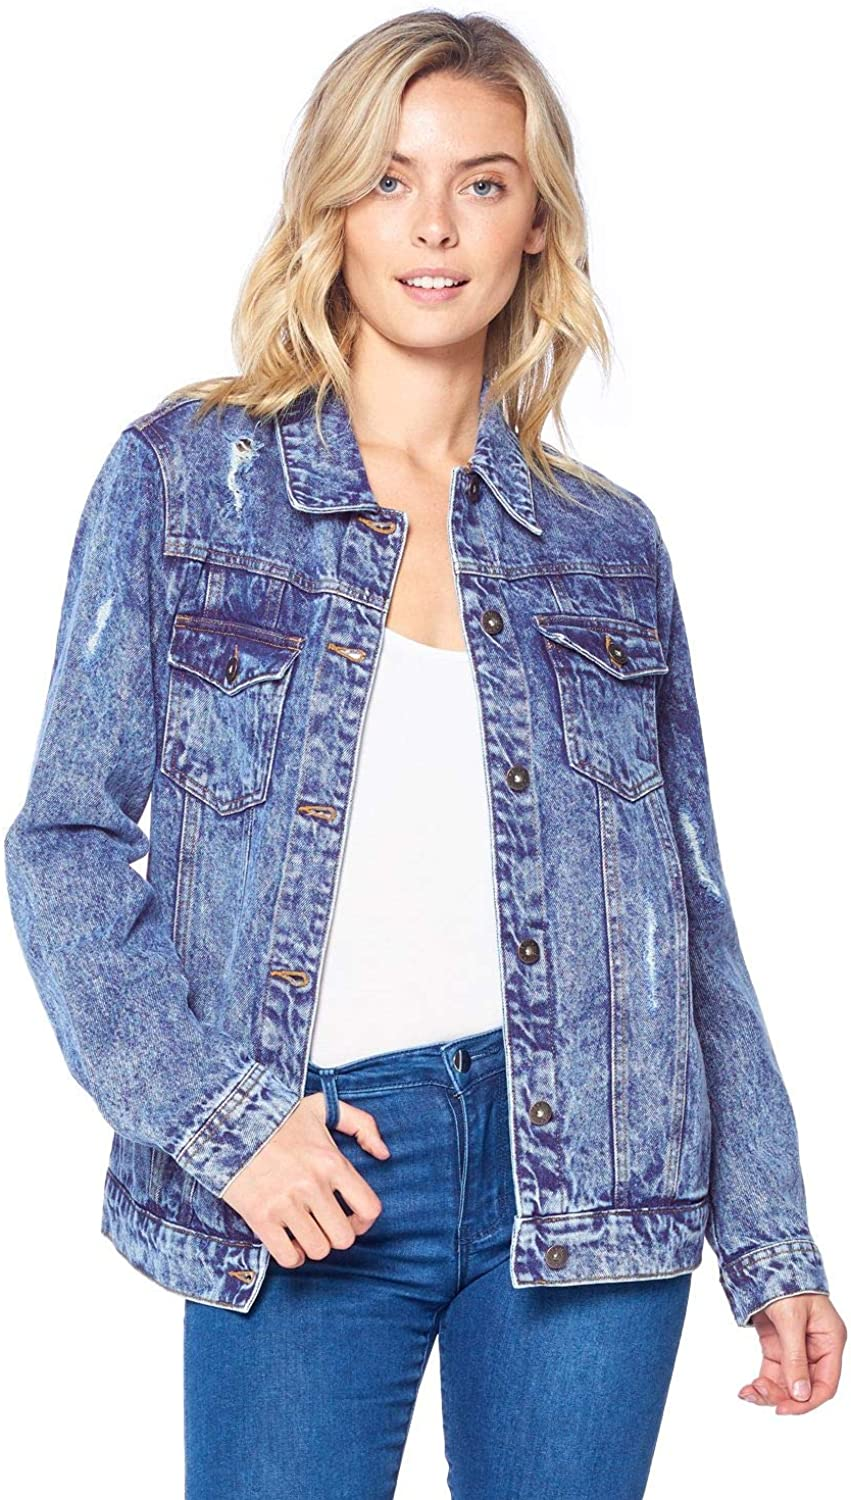 ICONICC Women's Denim Jacket low-pricing Jean New mail order